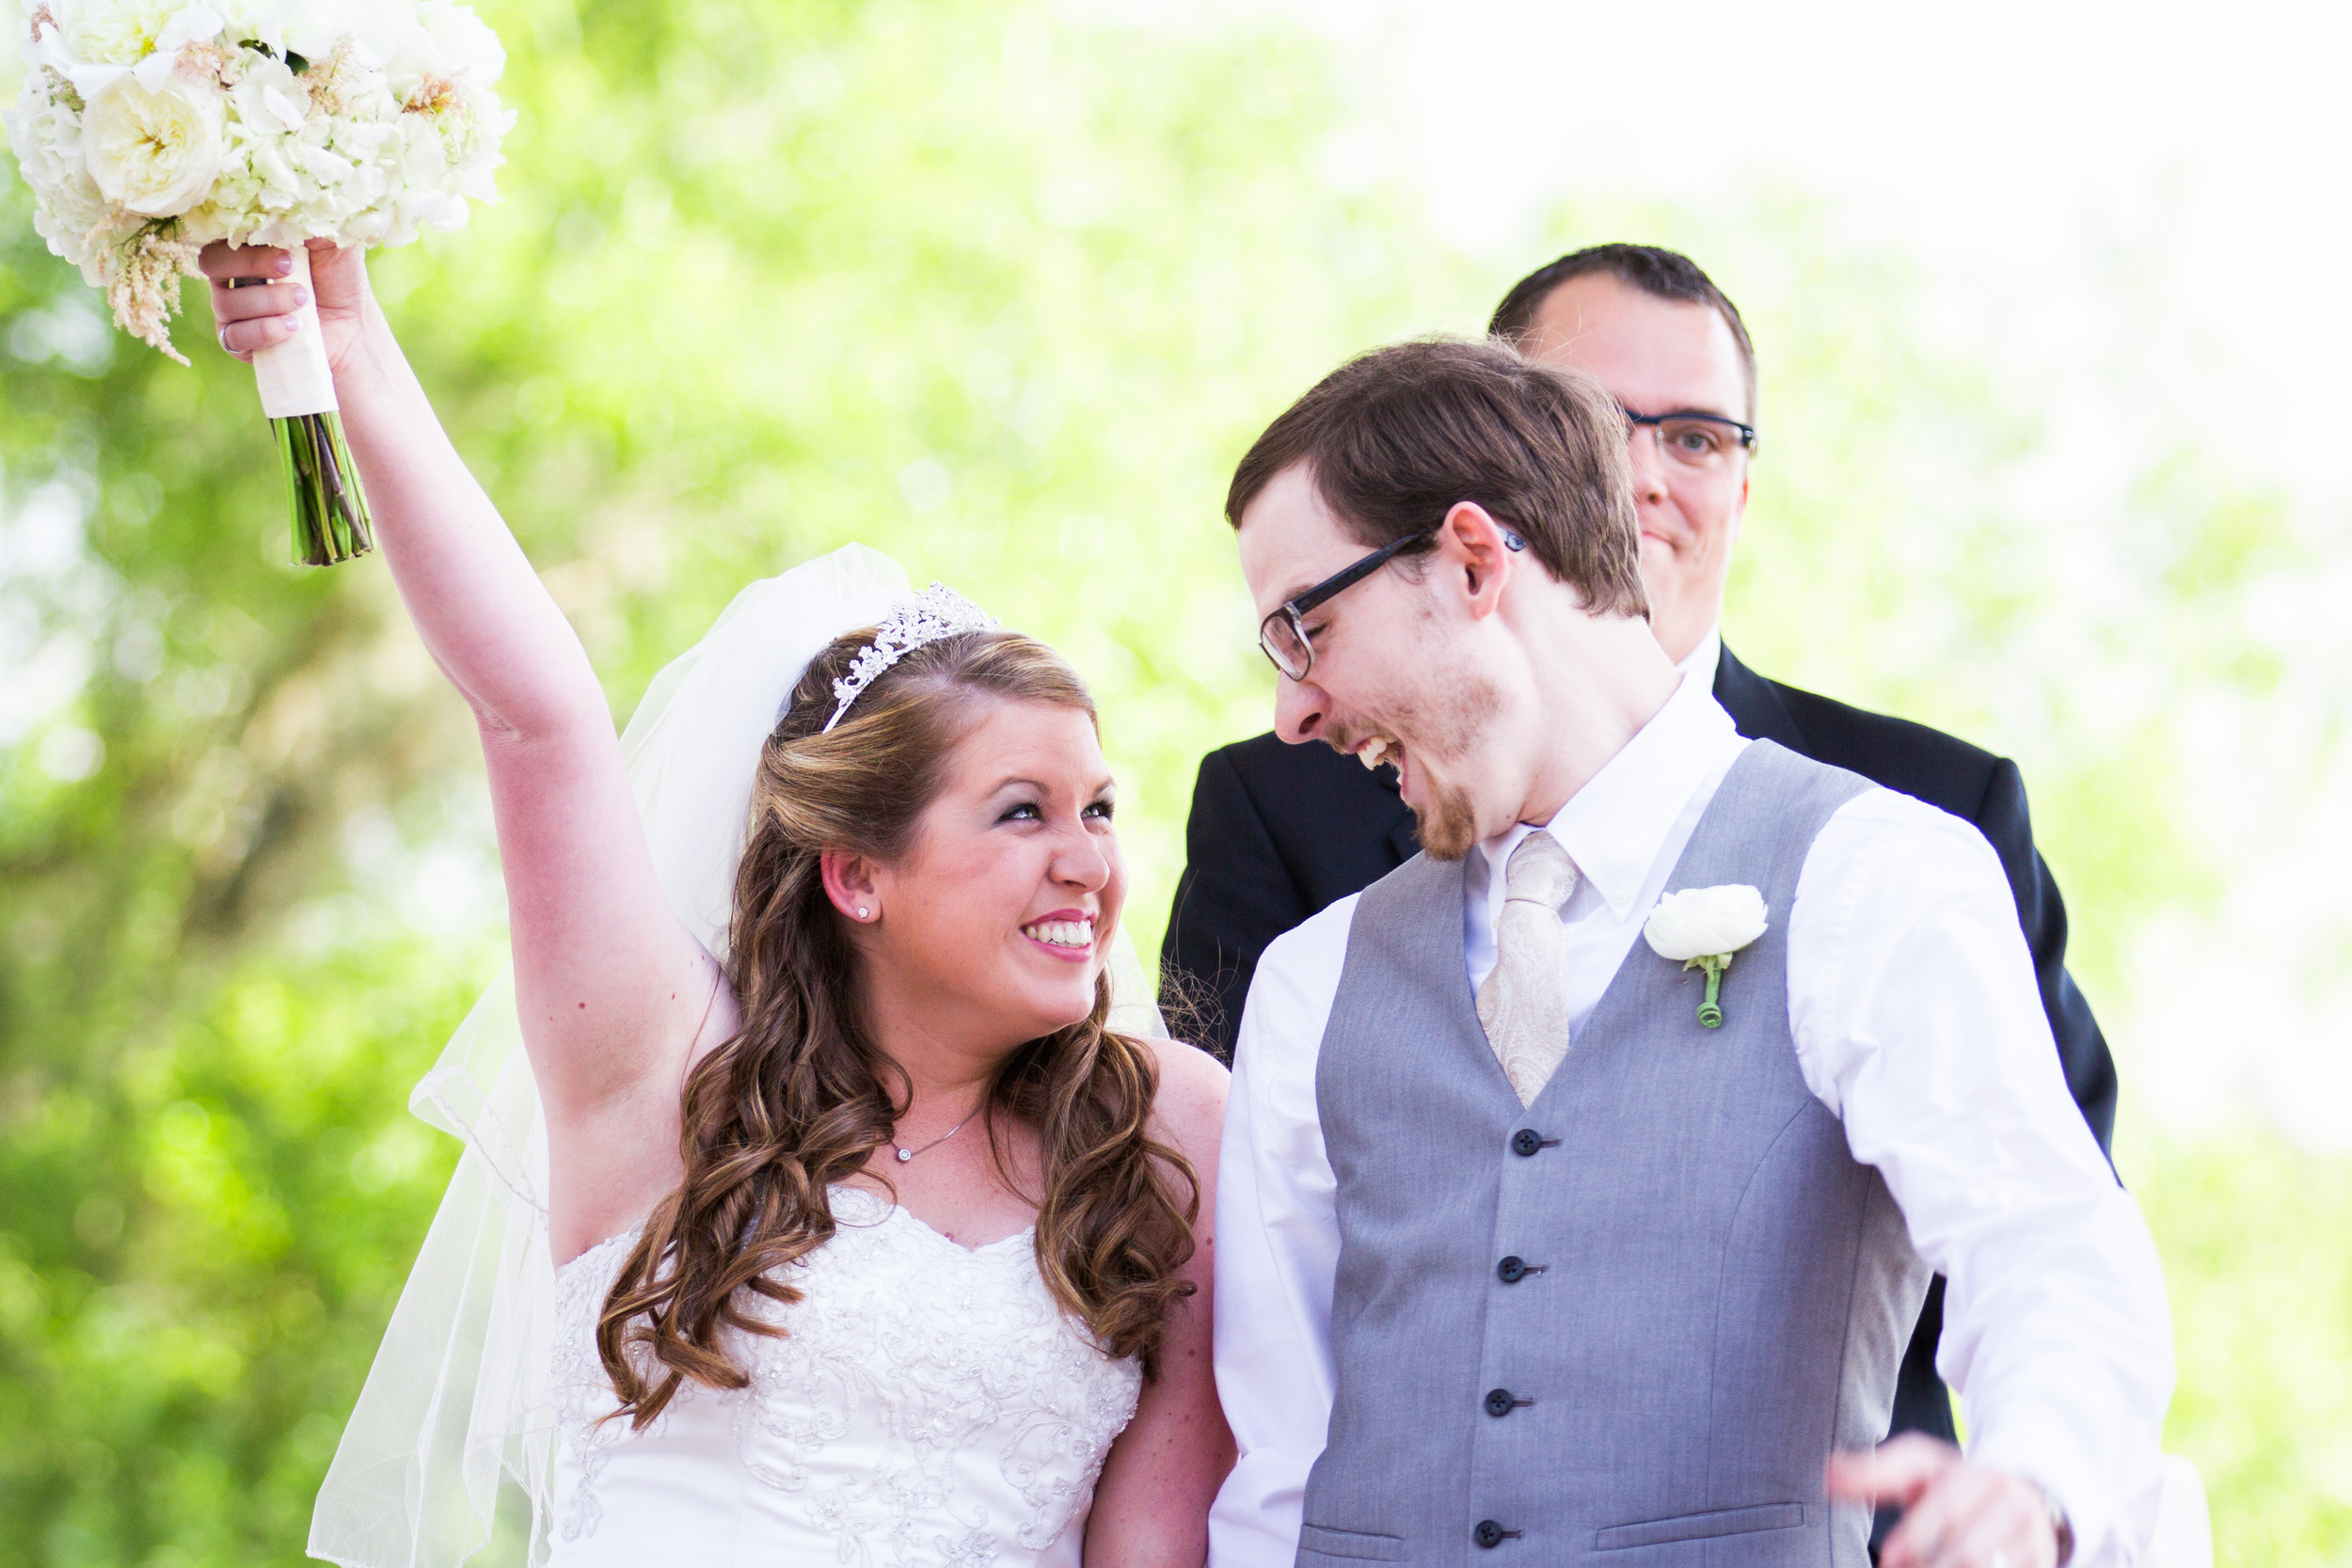 Excited couple at their romantic outdoor garden wedding